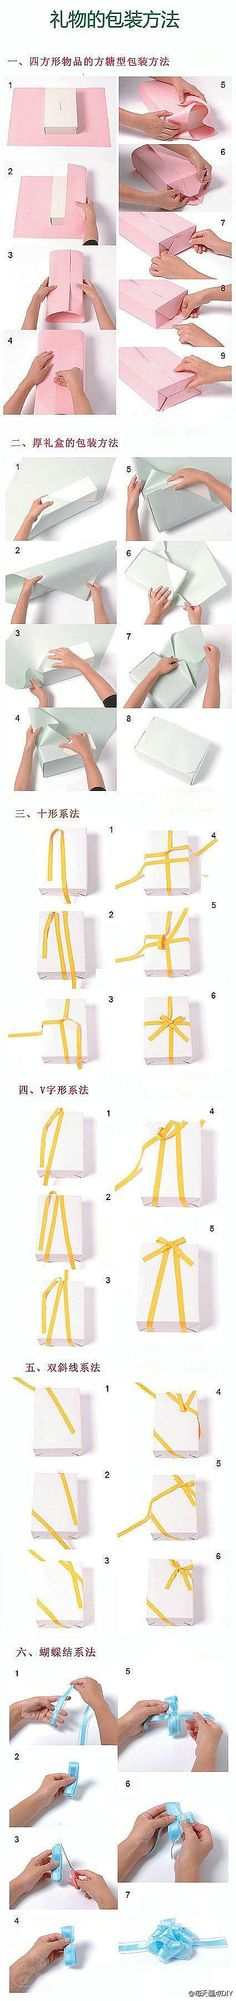 gift wrap and bow tie ideas